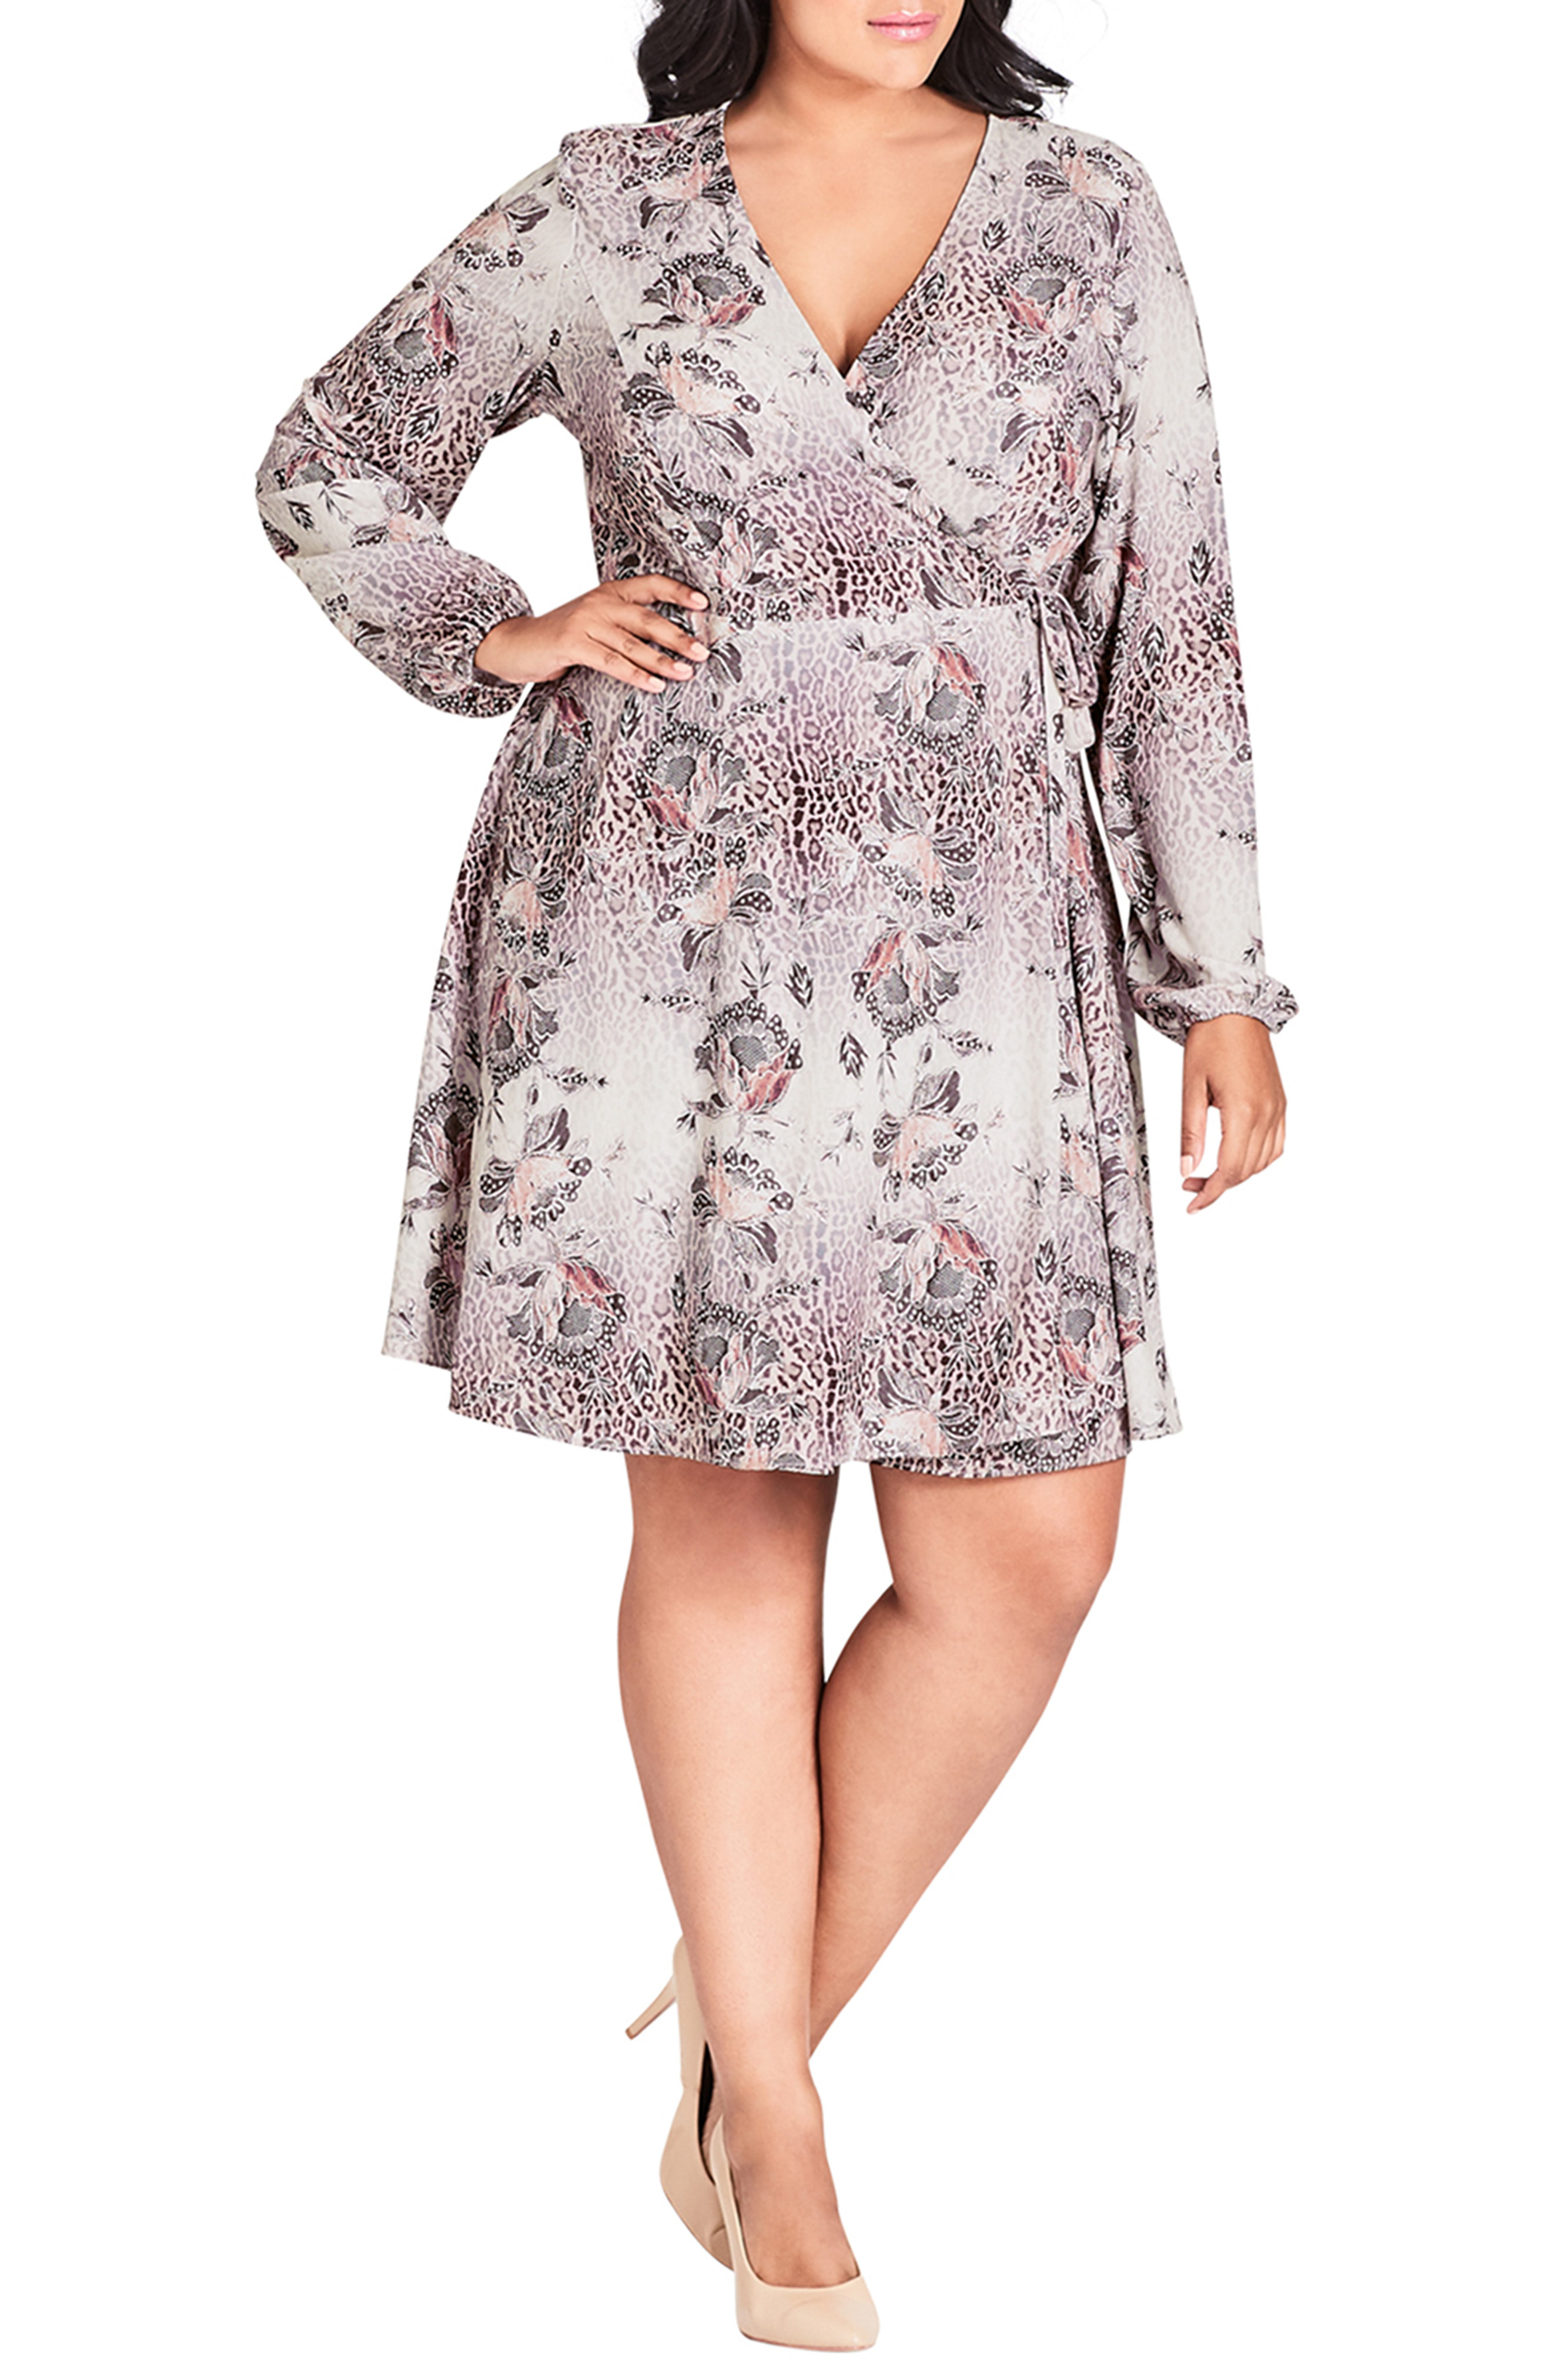 a76551ad500f5 City Chic Trendy Plus Size Mixed-Print Faux-Wrap Dress In Wild Lace ...